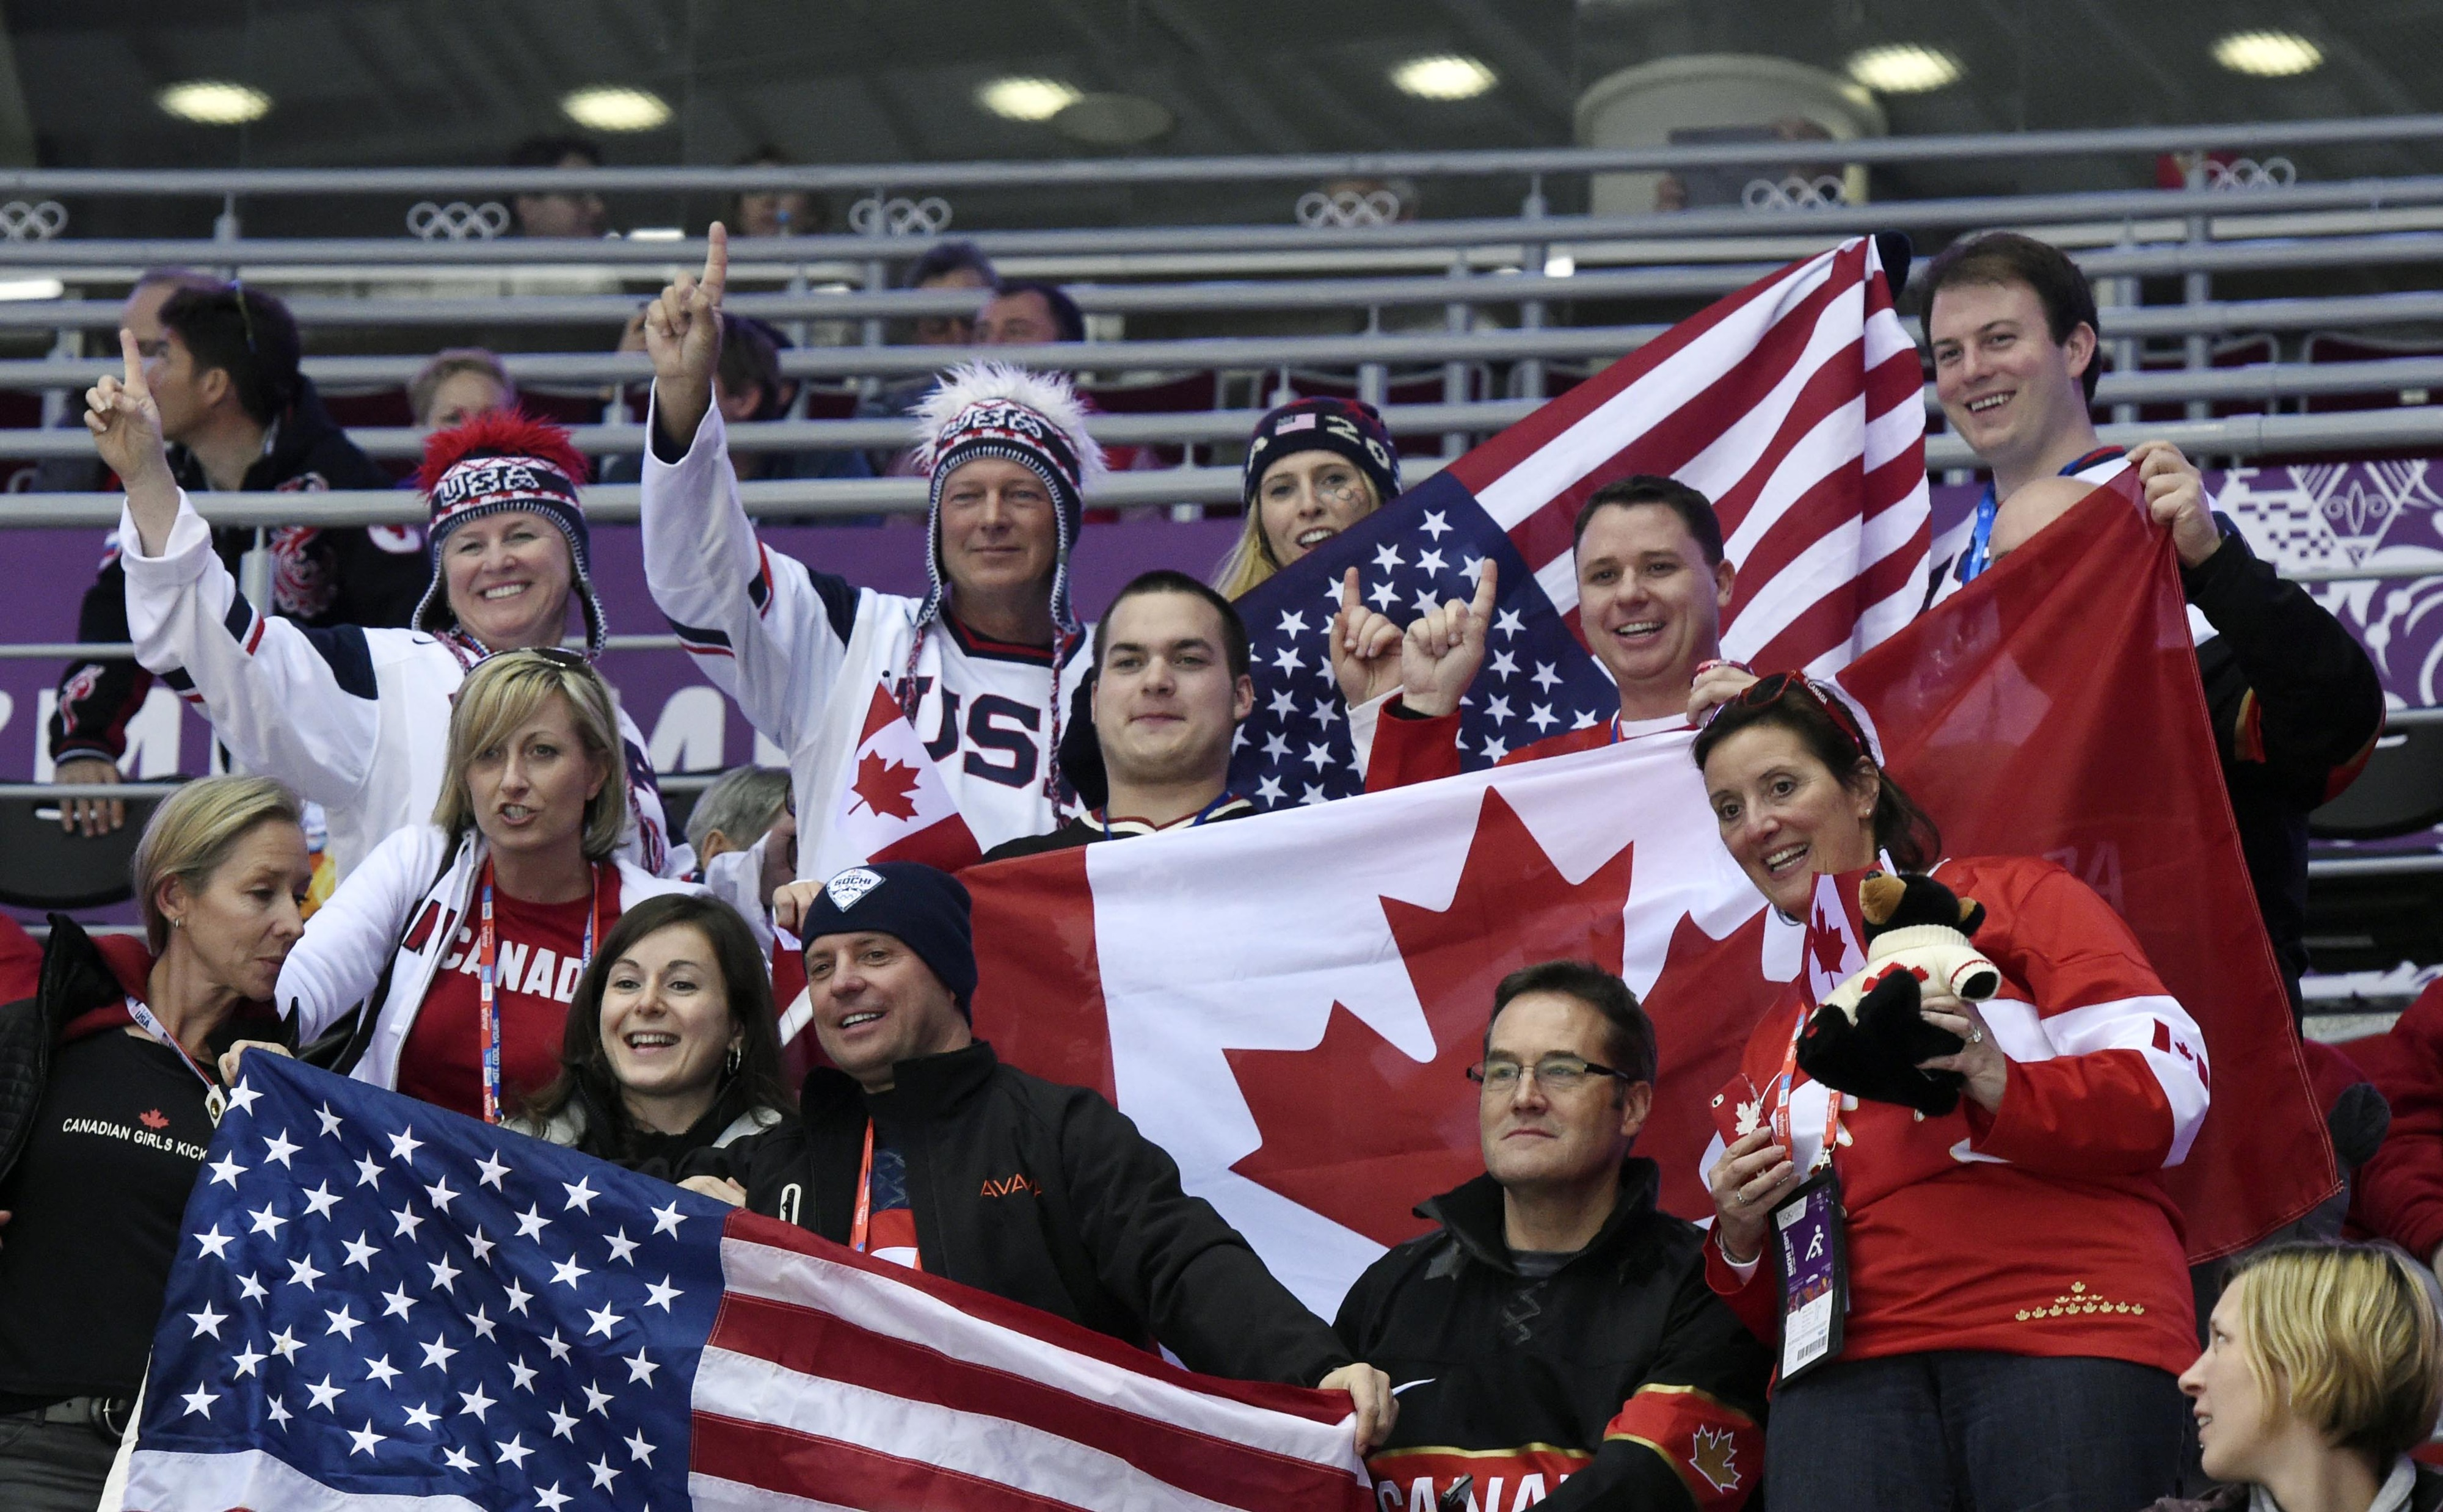 Fans at the Canada-USA game in Sochi